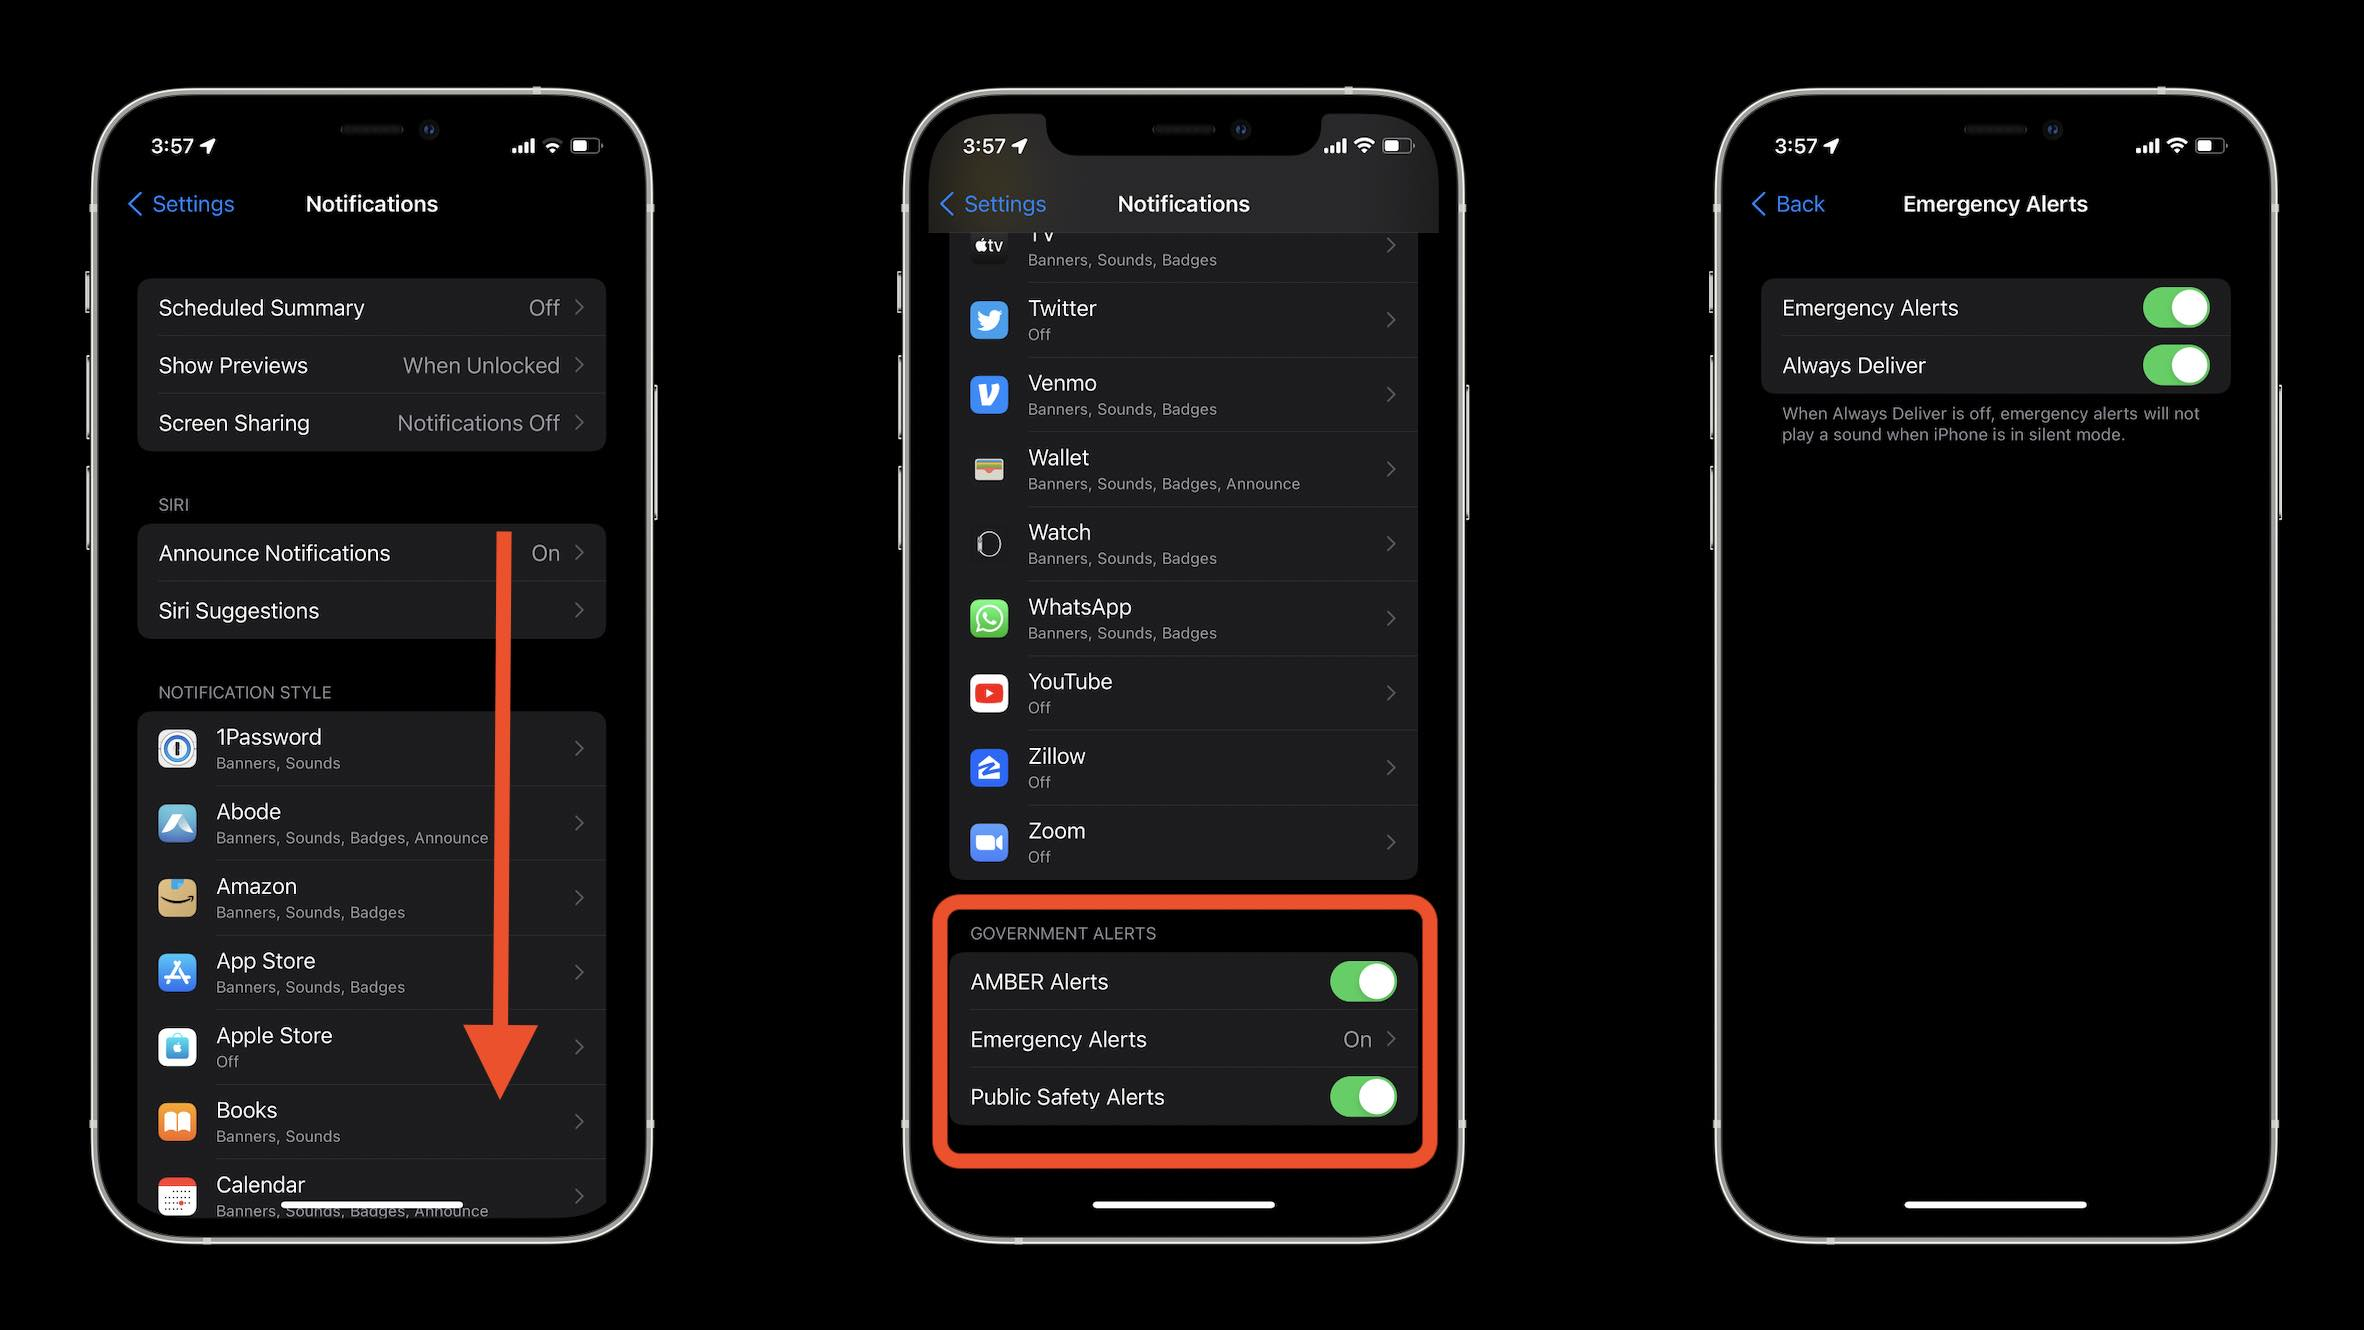 How to turn on/off emergency alerts on iPhone walkthrough - Settings > Notifications > Government Alerts